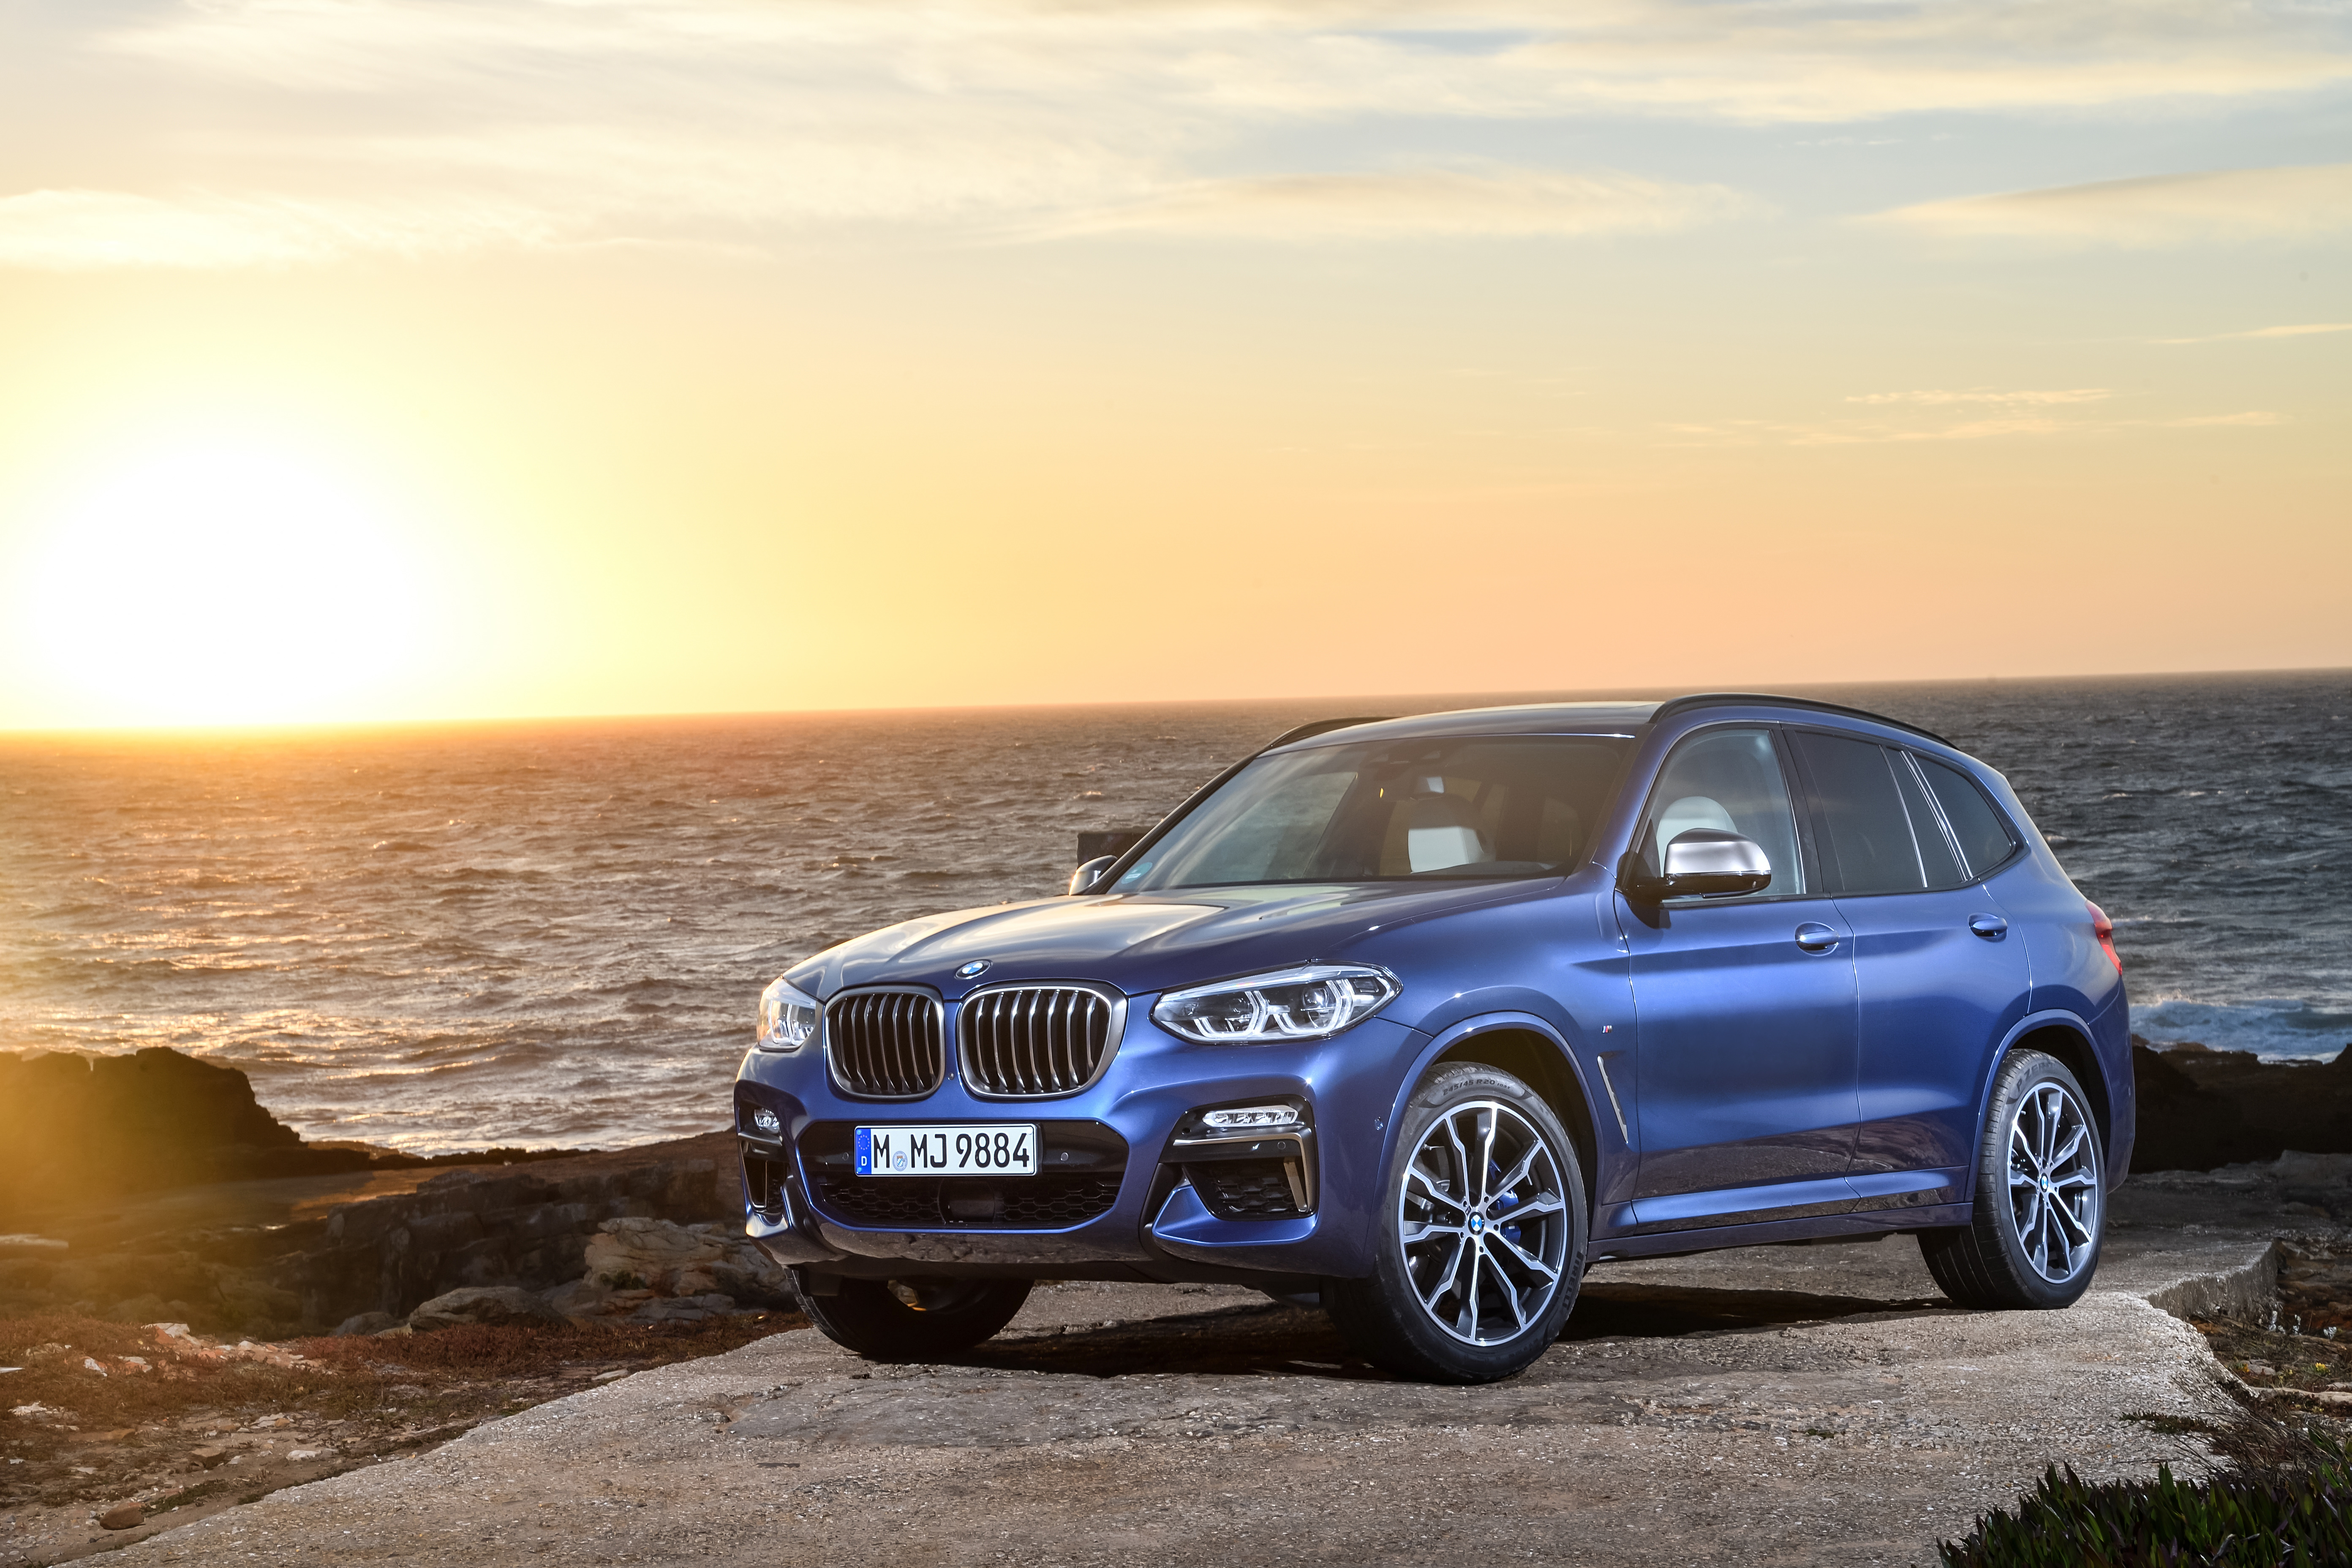 BMW Group remains world's leading premium automotive company in 2018